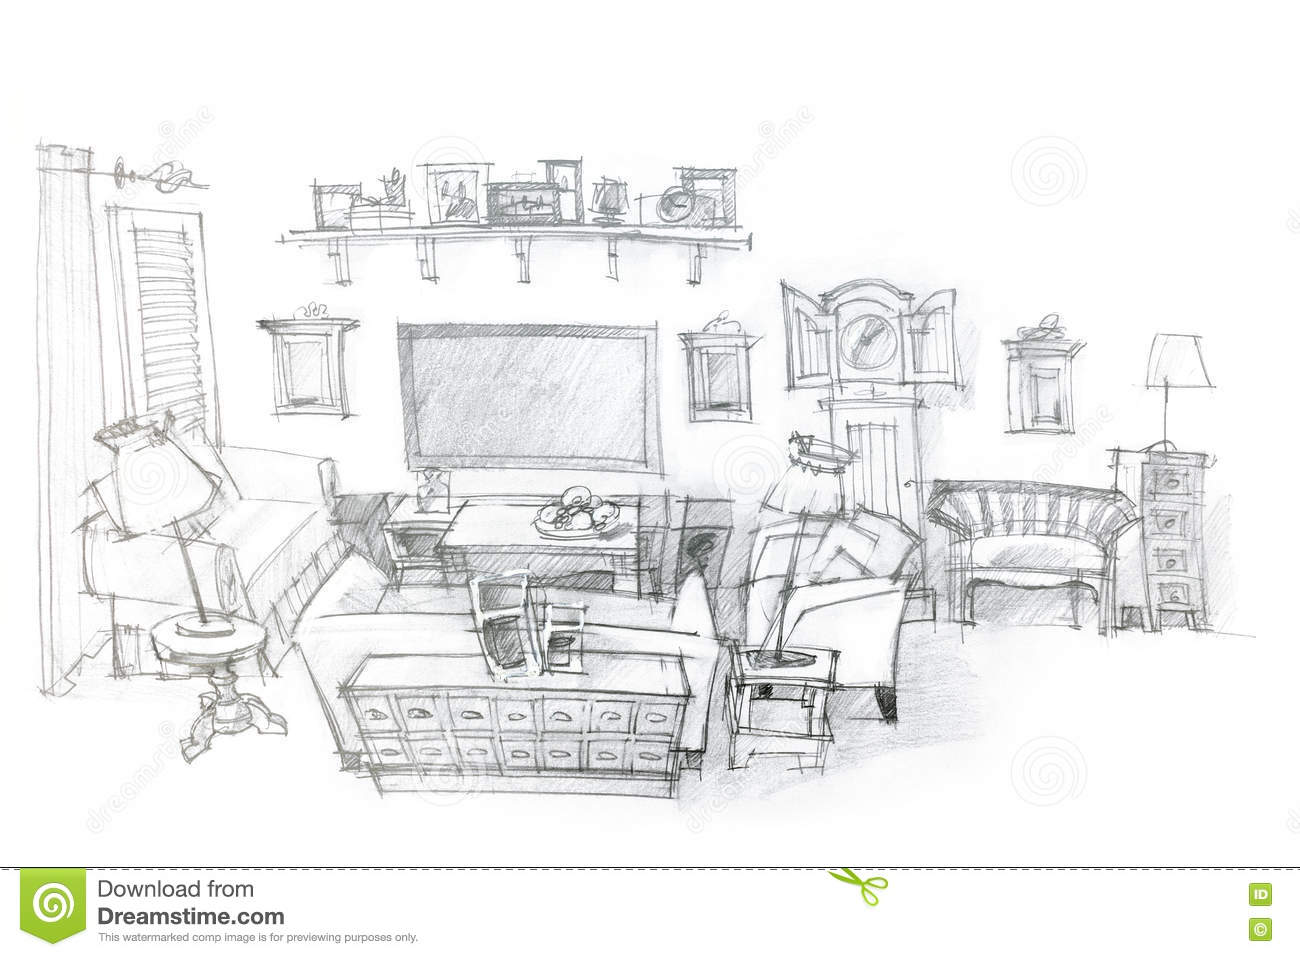 Living room drawing design - Architectural Hand Drawing Of Modern Living Room Interior Royalty Free Stock Photo